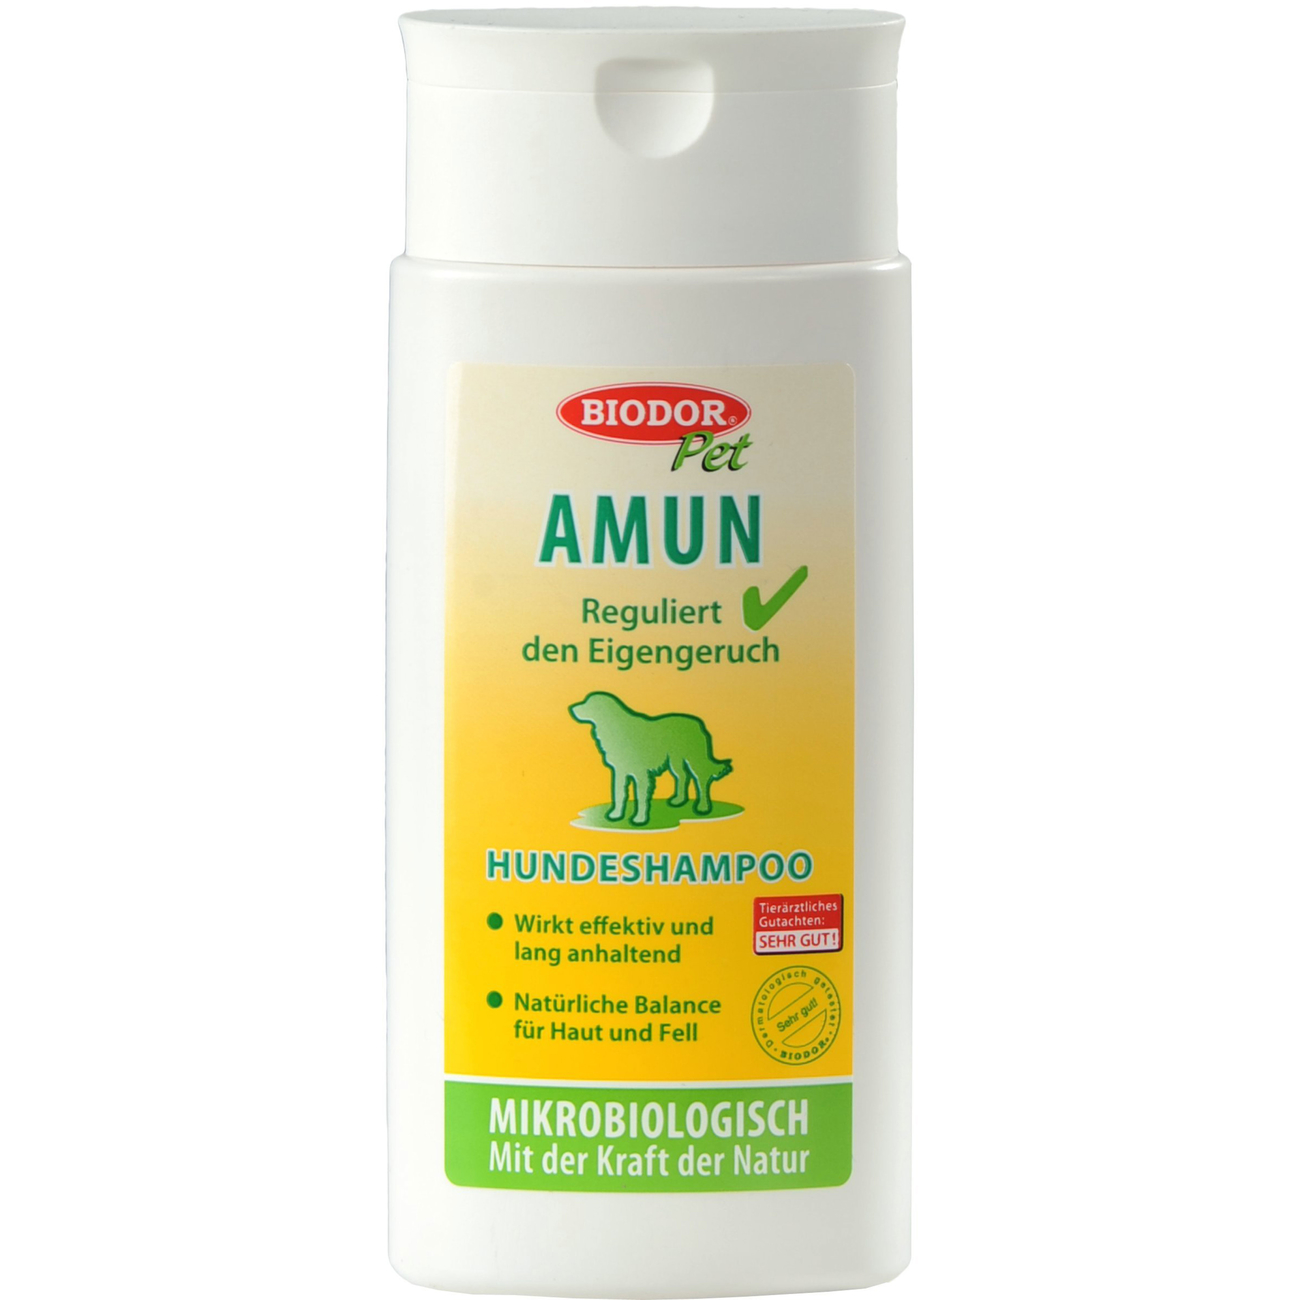 Biodor Animal AMUN Hundeshampoo, 200 ml